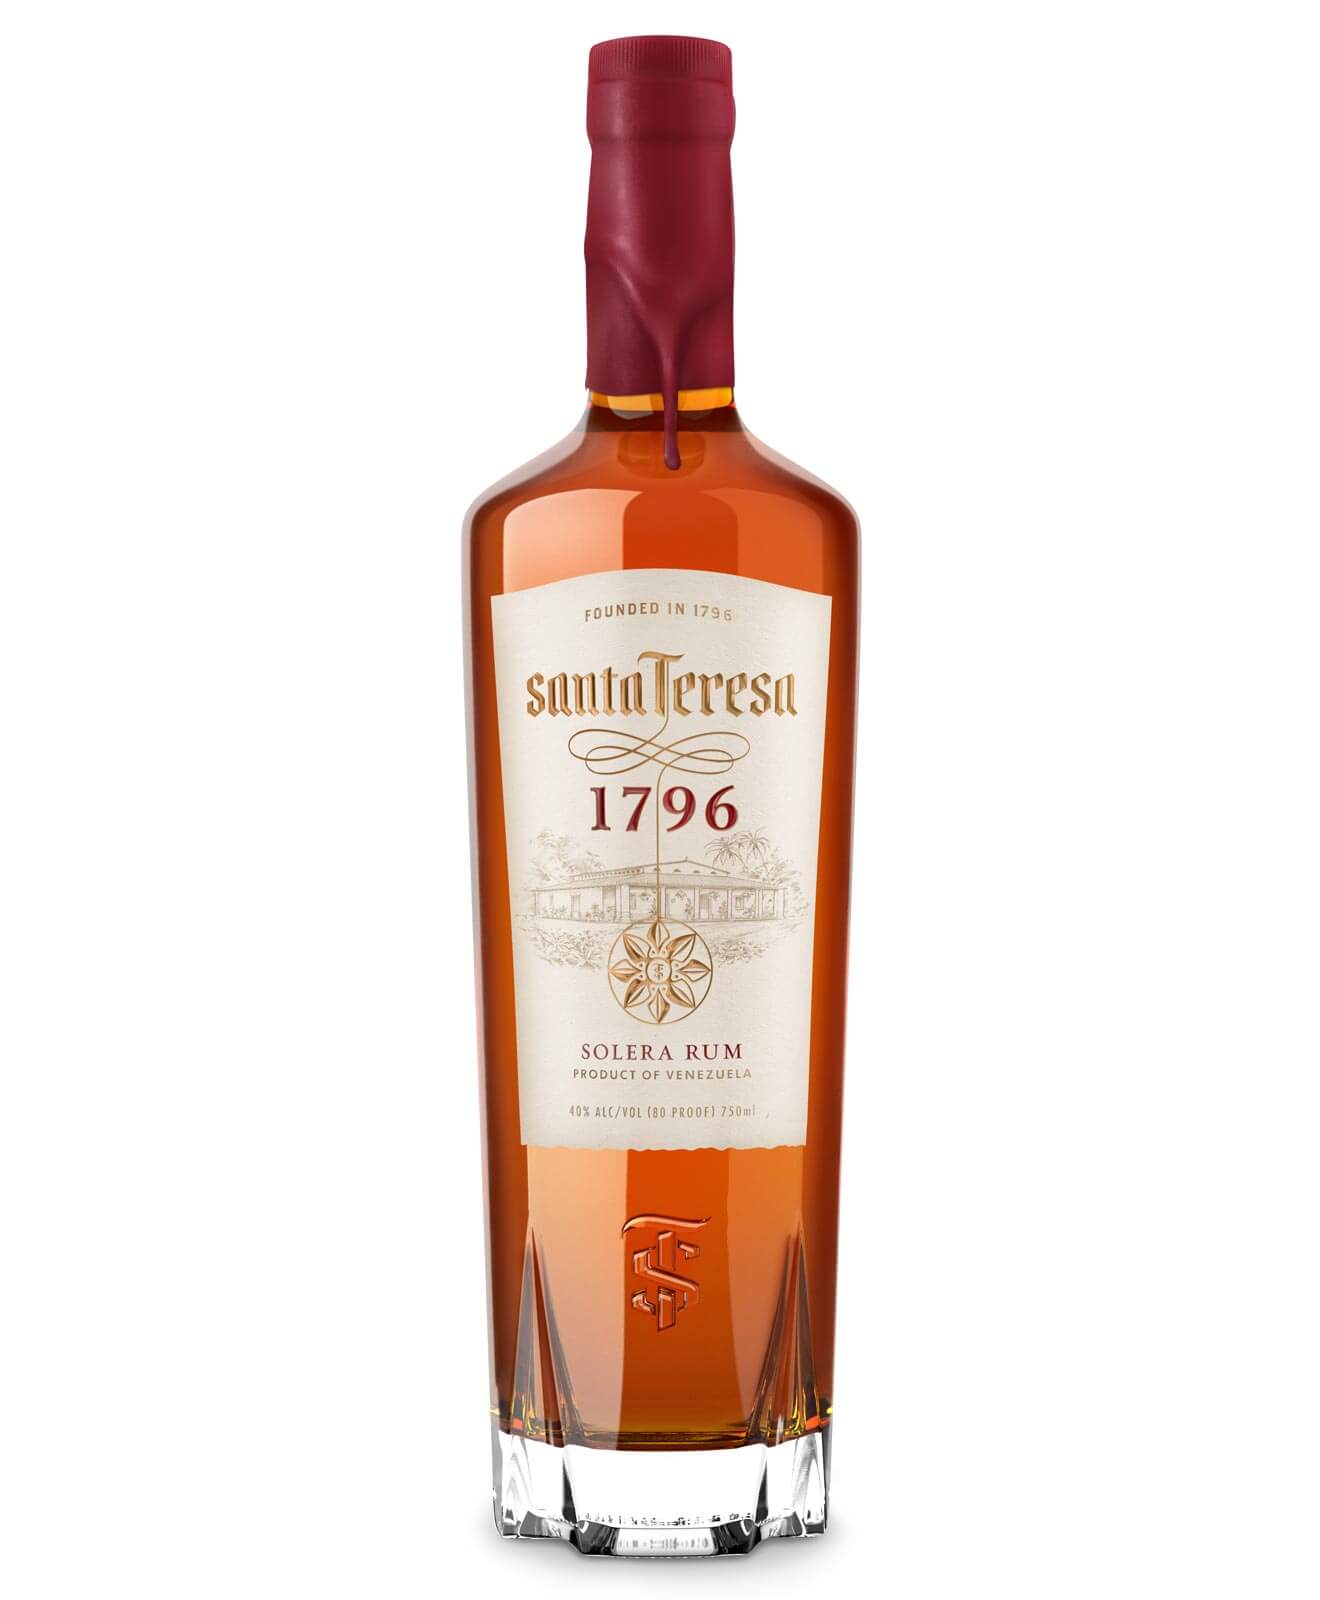 Santa Teresa 1796, bottle on white